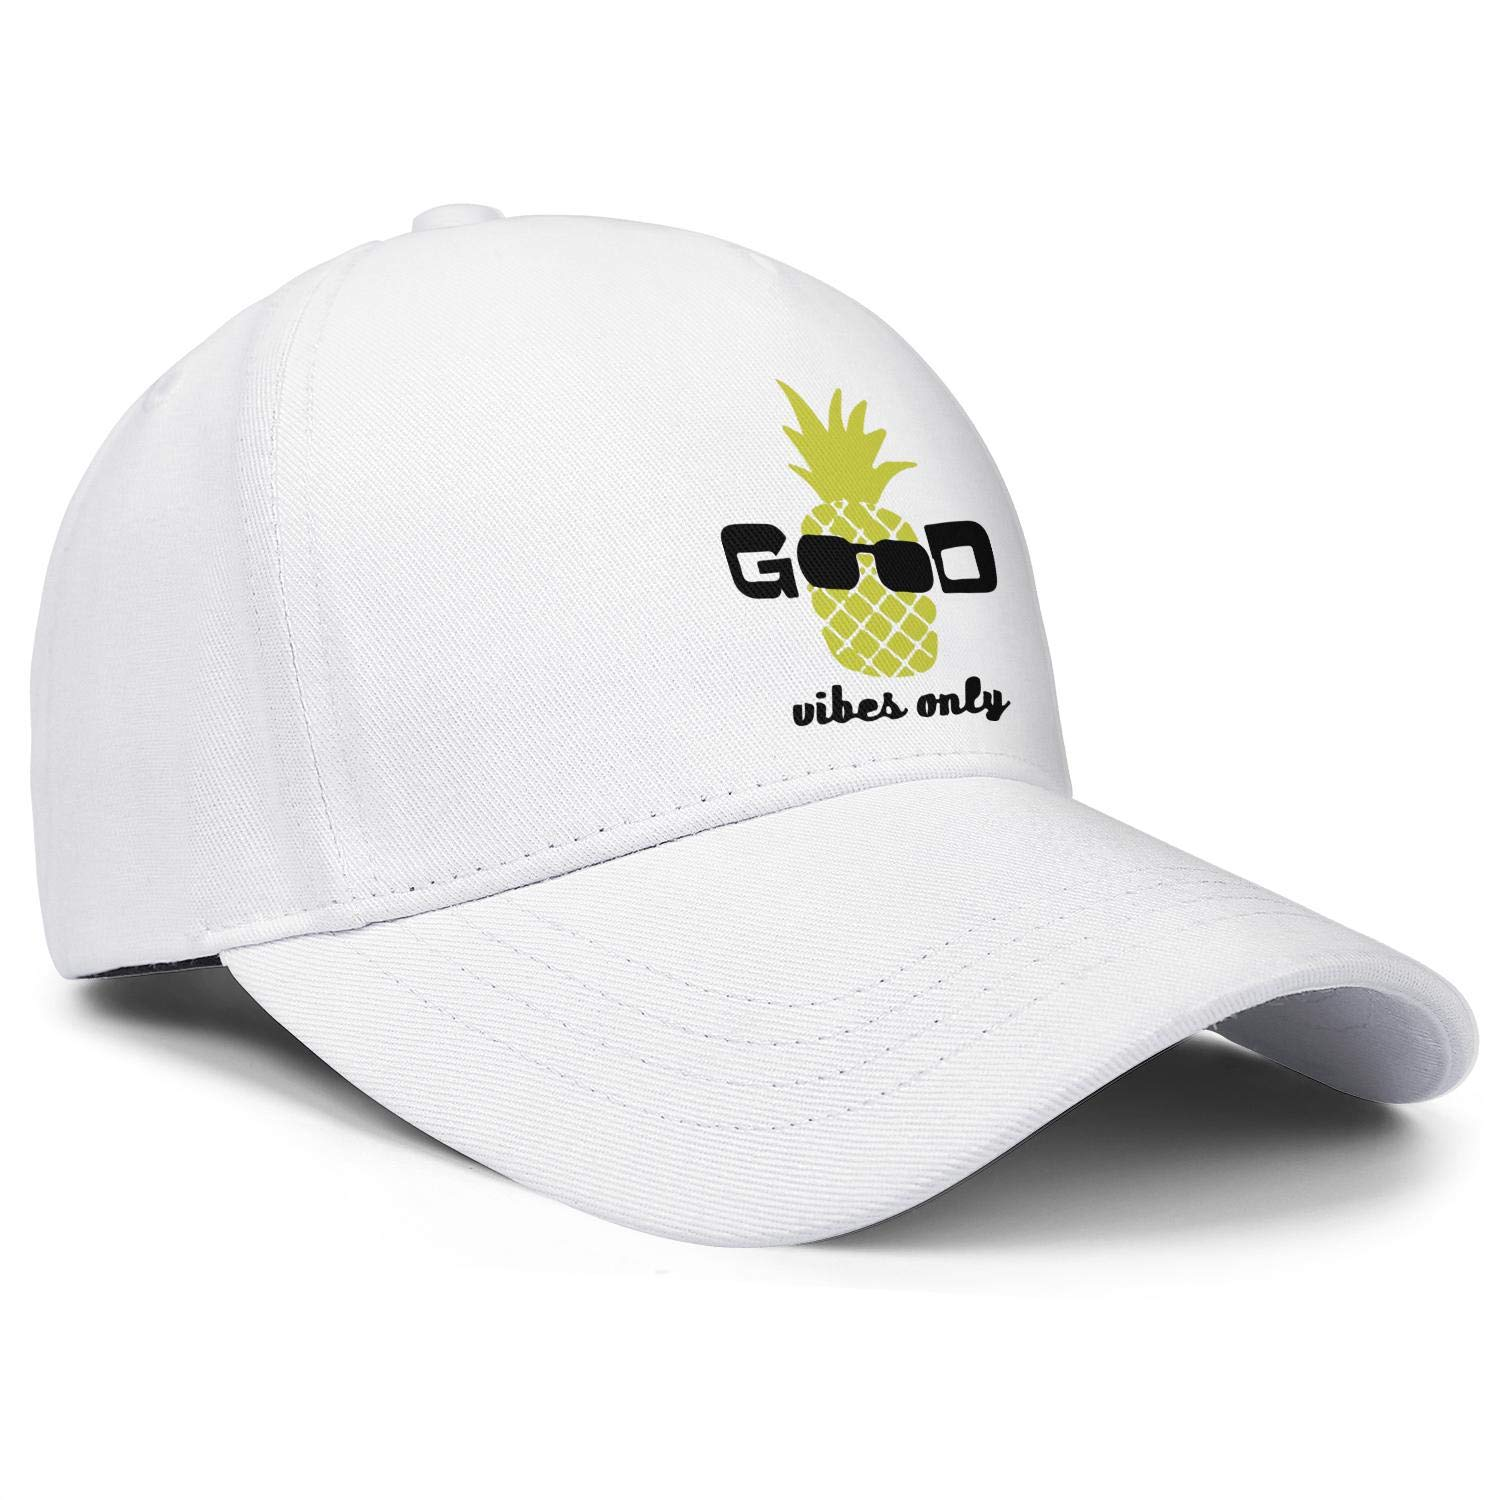 The Pineapple Good Vibes Unisex Baseball Cap Highly Breathable Sport Hats Adjustable Trucker Caps Dad-Hat